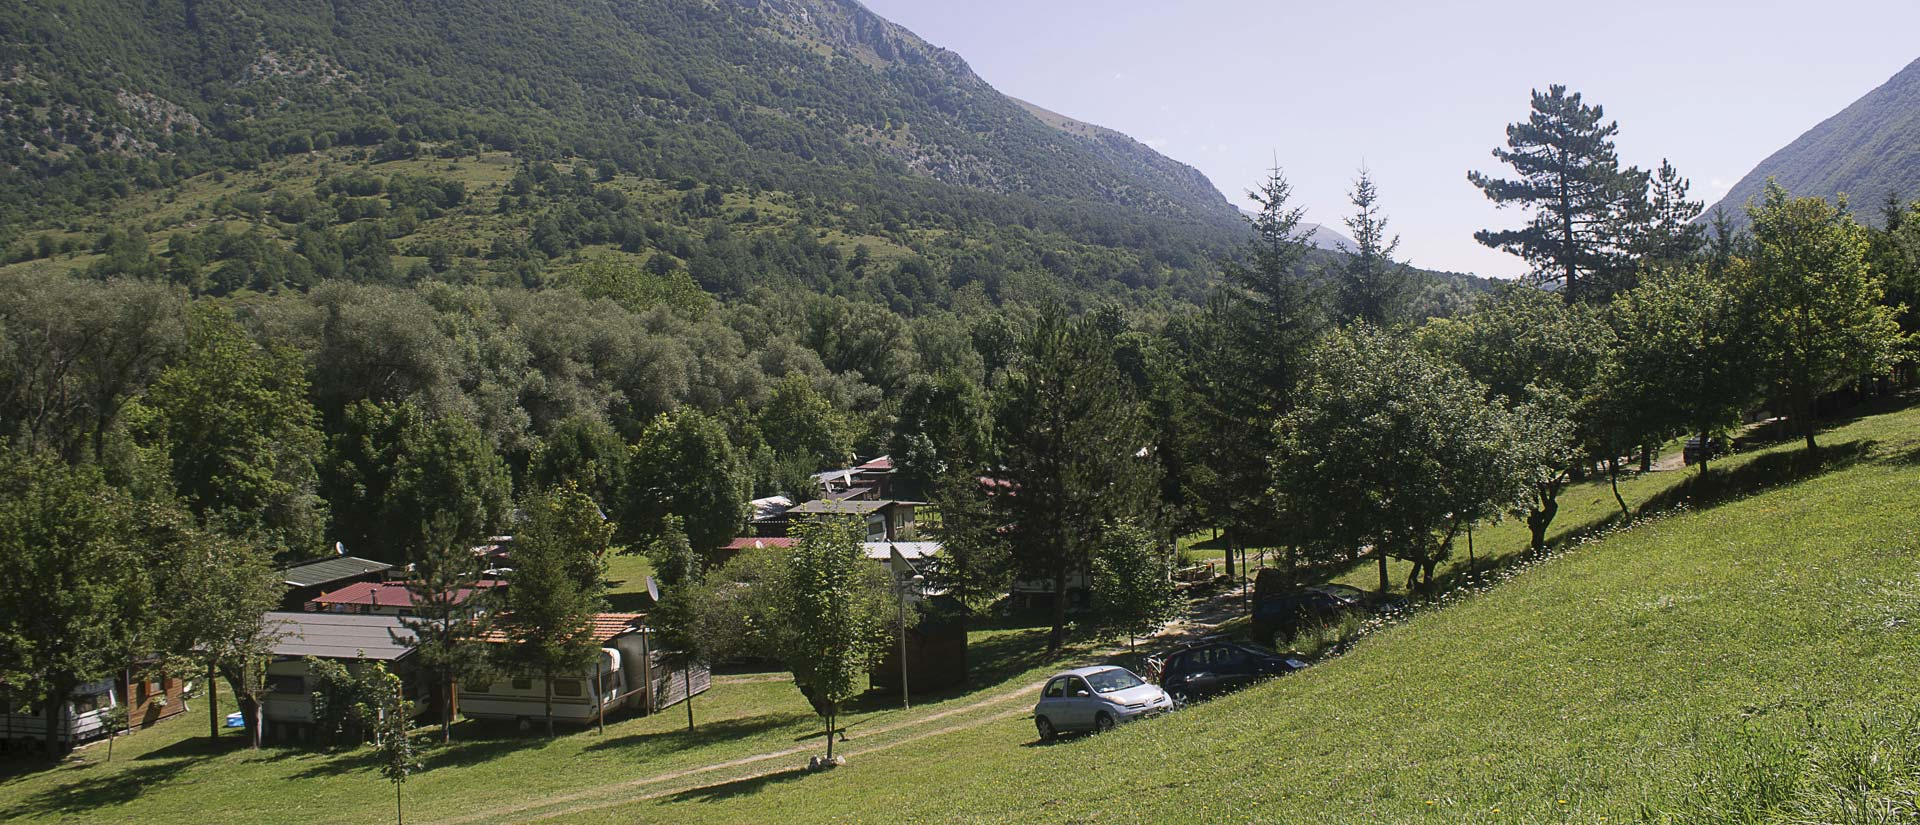 Camping Le Foci - Camping in the National Park of Abruzzo, Lazio and Molise